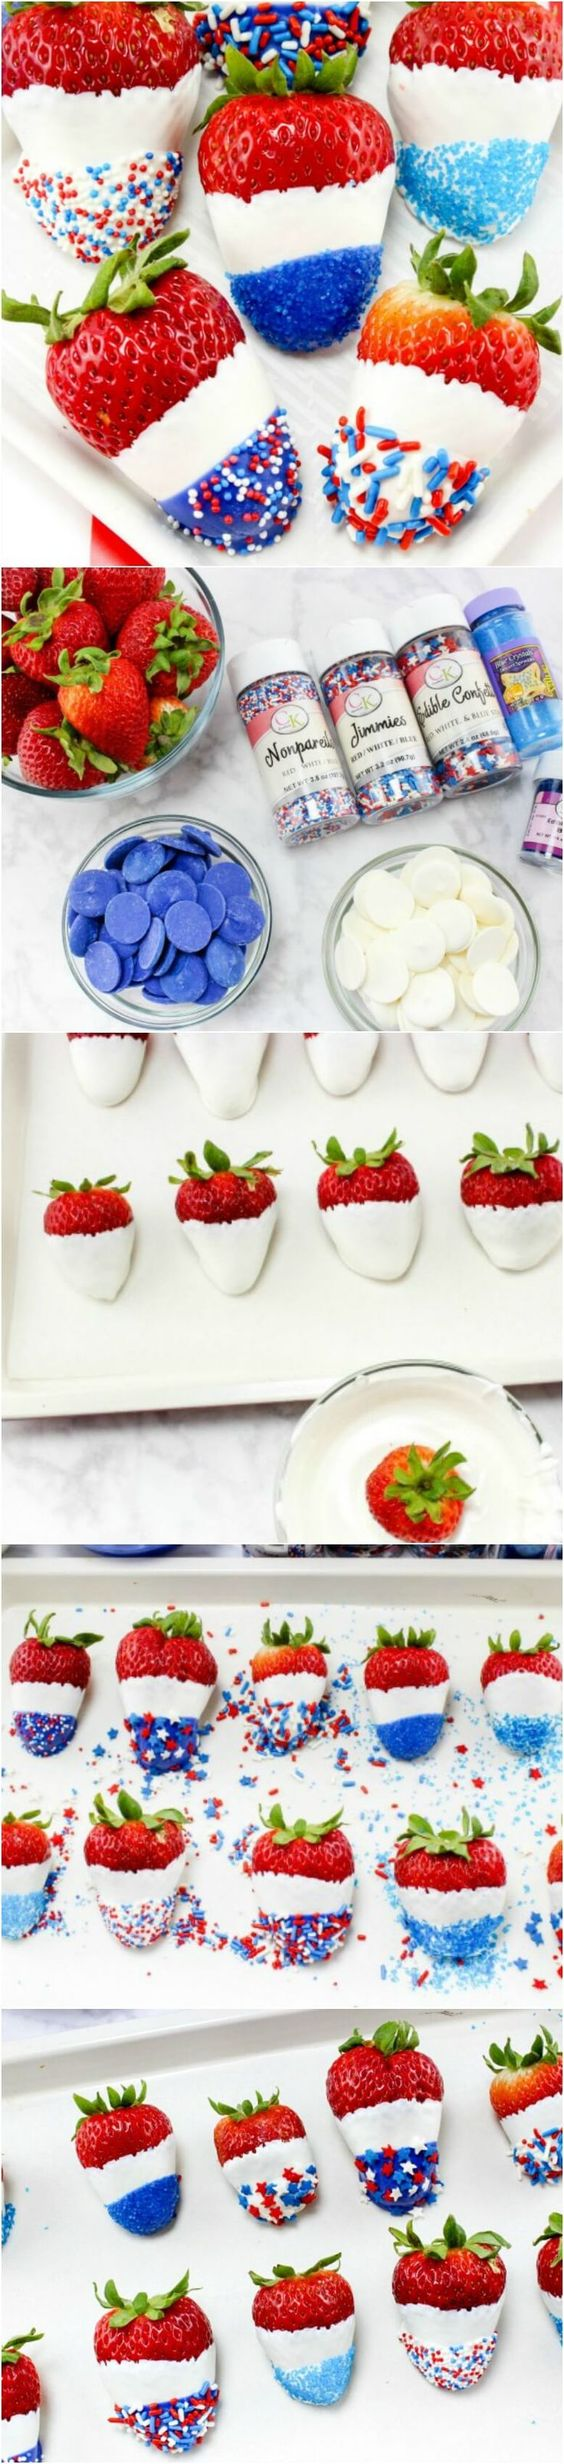 Red, White & Blue Chocolate Covered Strawberries.